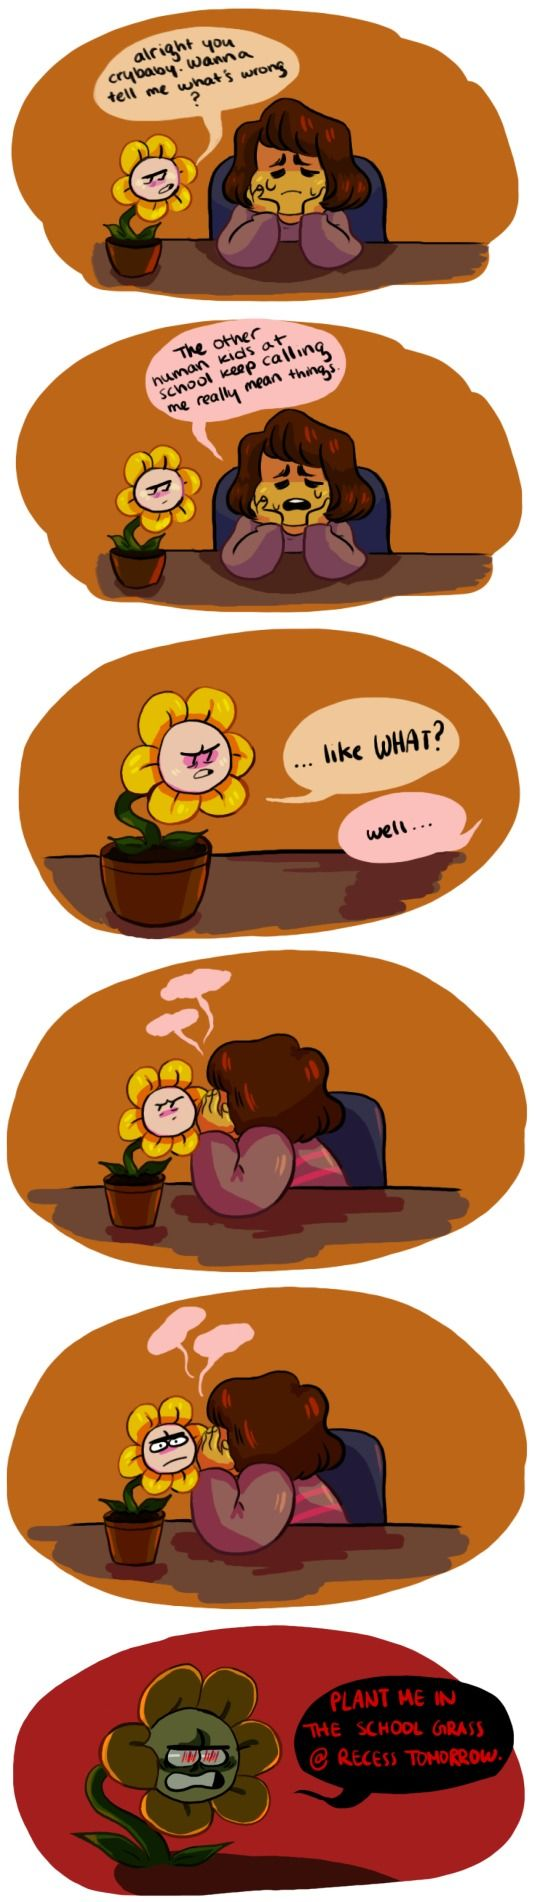 "At reses the next day *hids are pushing Frisk around, frisk holds up spiling flower* ""How do you thing THAT is going to help you? ""Mean joke"" Flowey starts getting a creepyer and creepyer look on his face, then says ""You will die, dlowley and painfuly... when you ask... NOW!"" *the kids run away, scared half to death* "" Now if they are ever mean again, just ask me."""